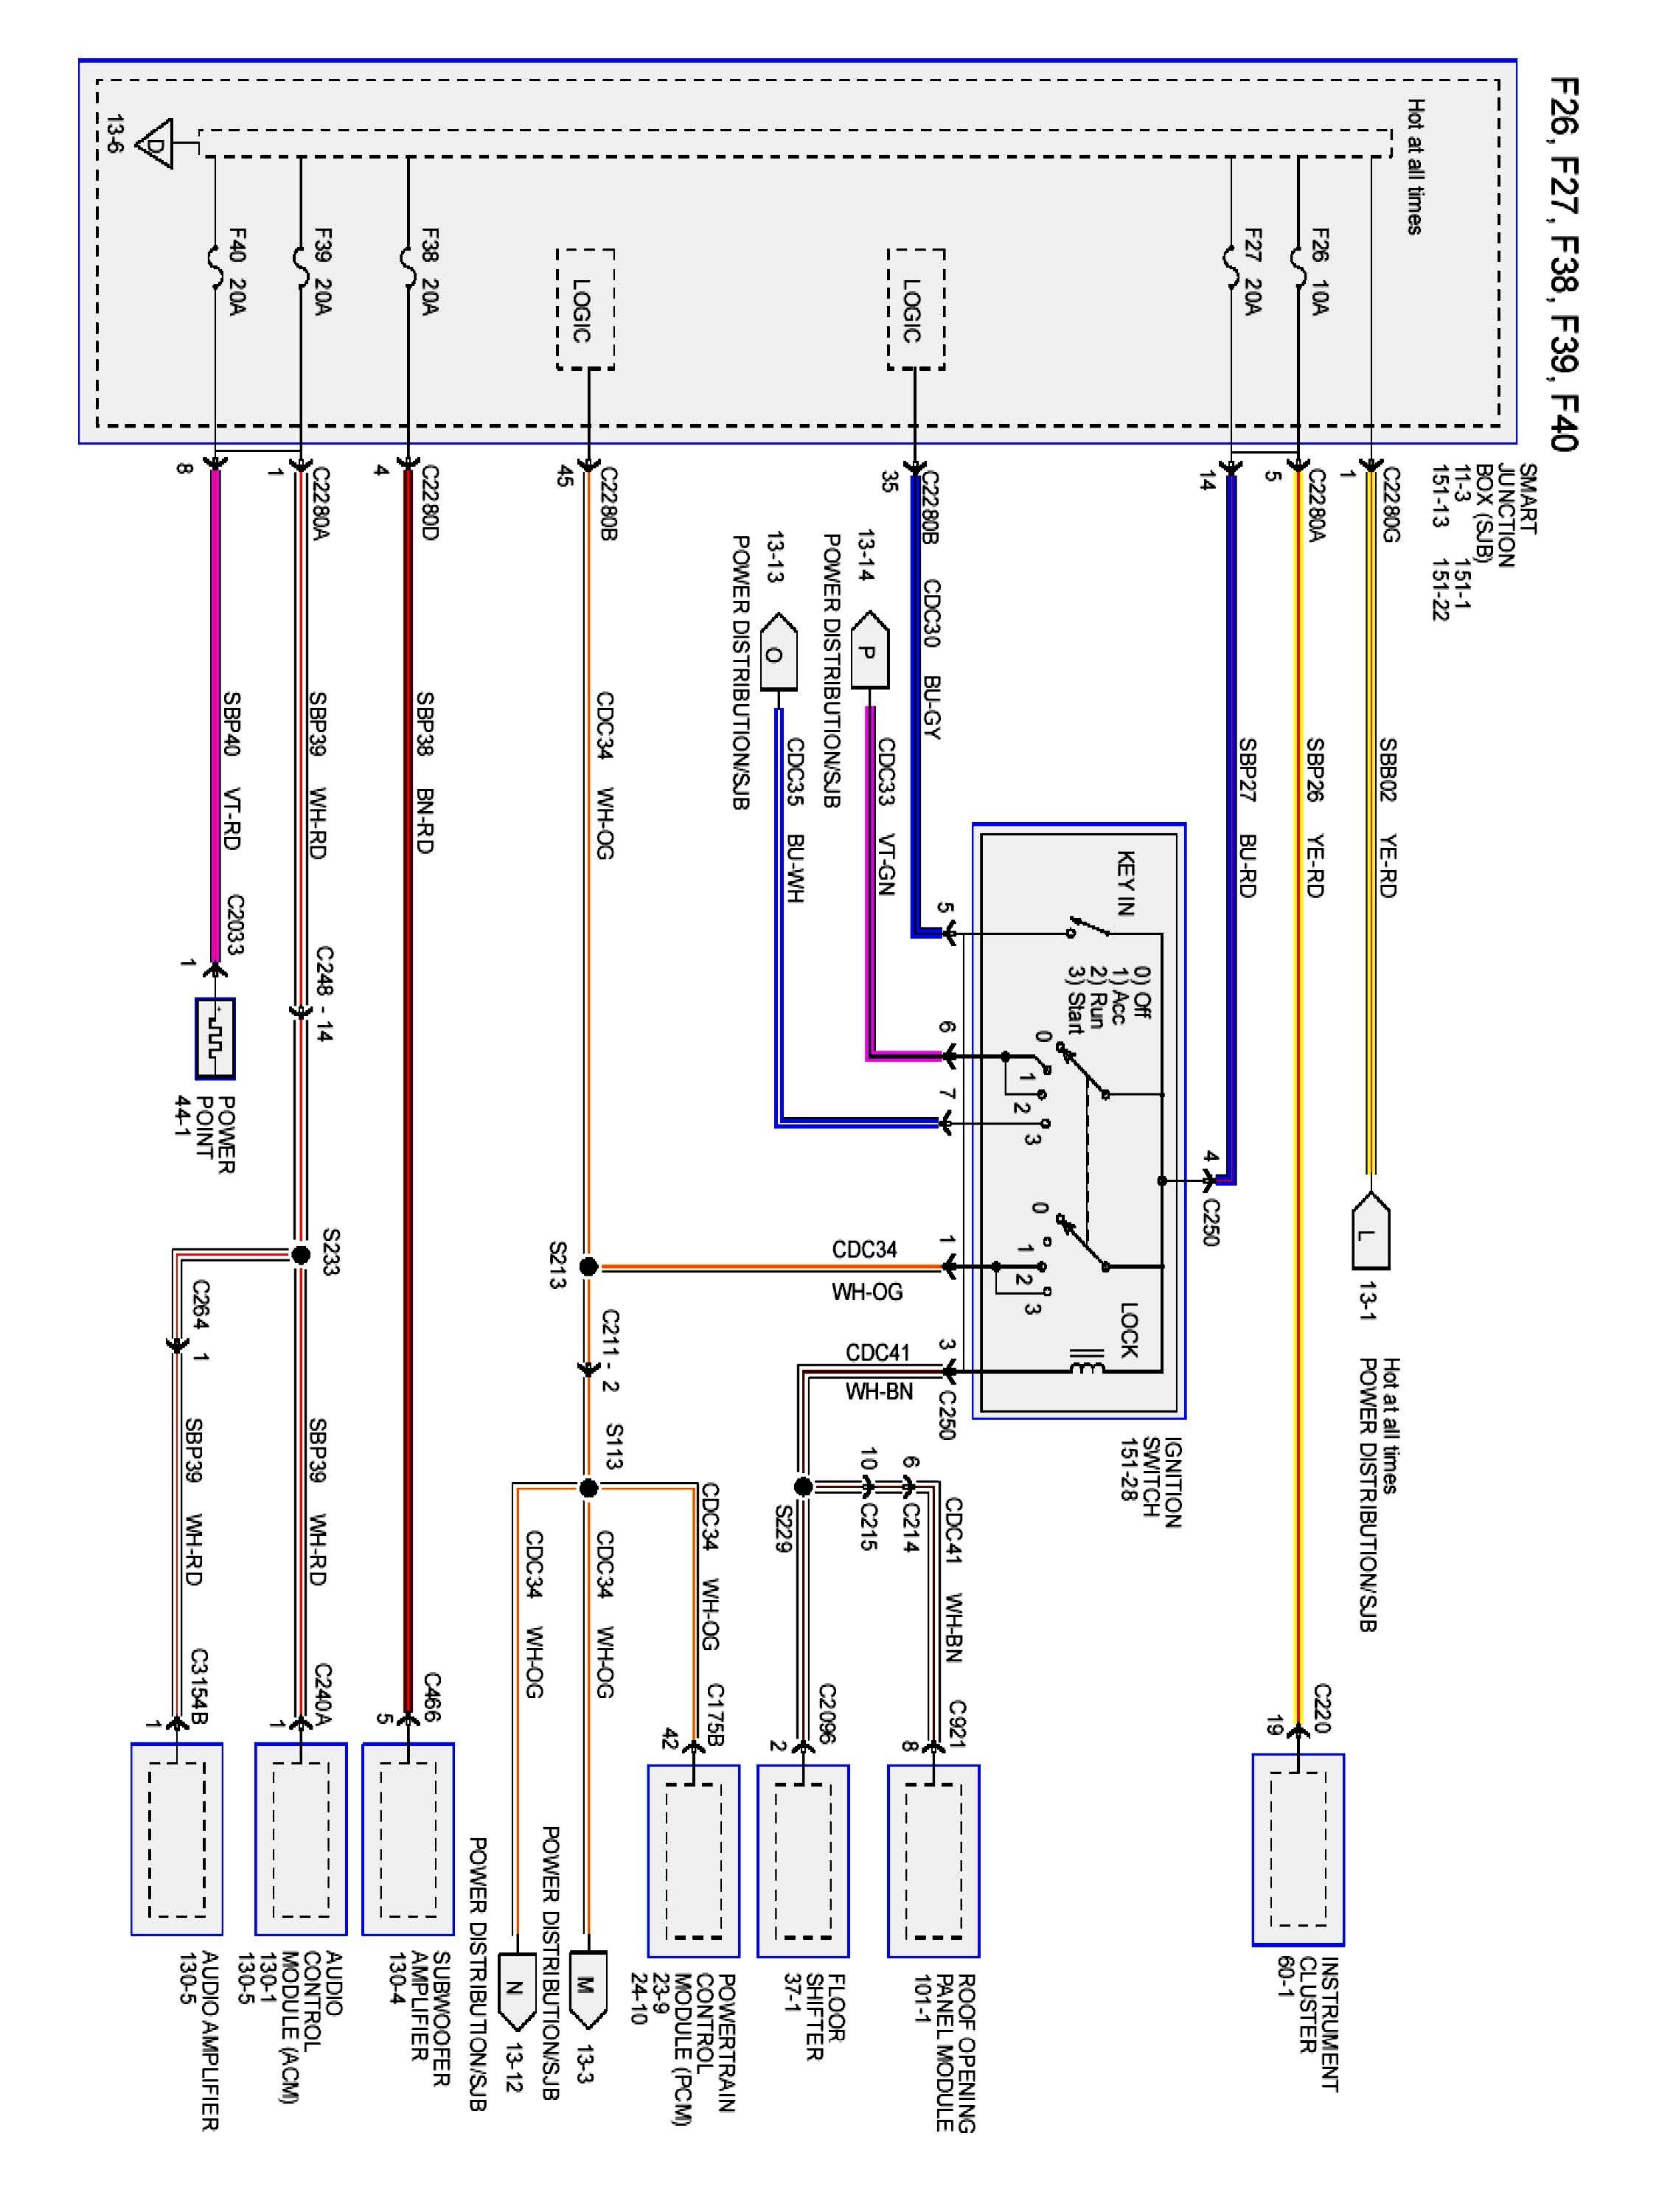 2010 Focus Wiring Diagram Basic Wiring Home Theater Diagram Source Auto5 Nescafe Jeanjaures37 Fr